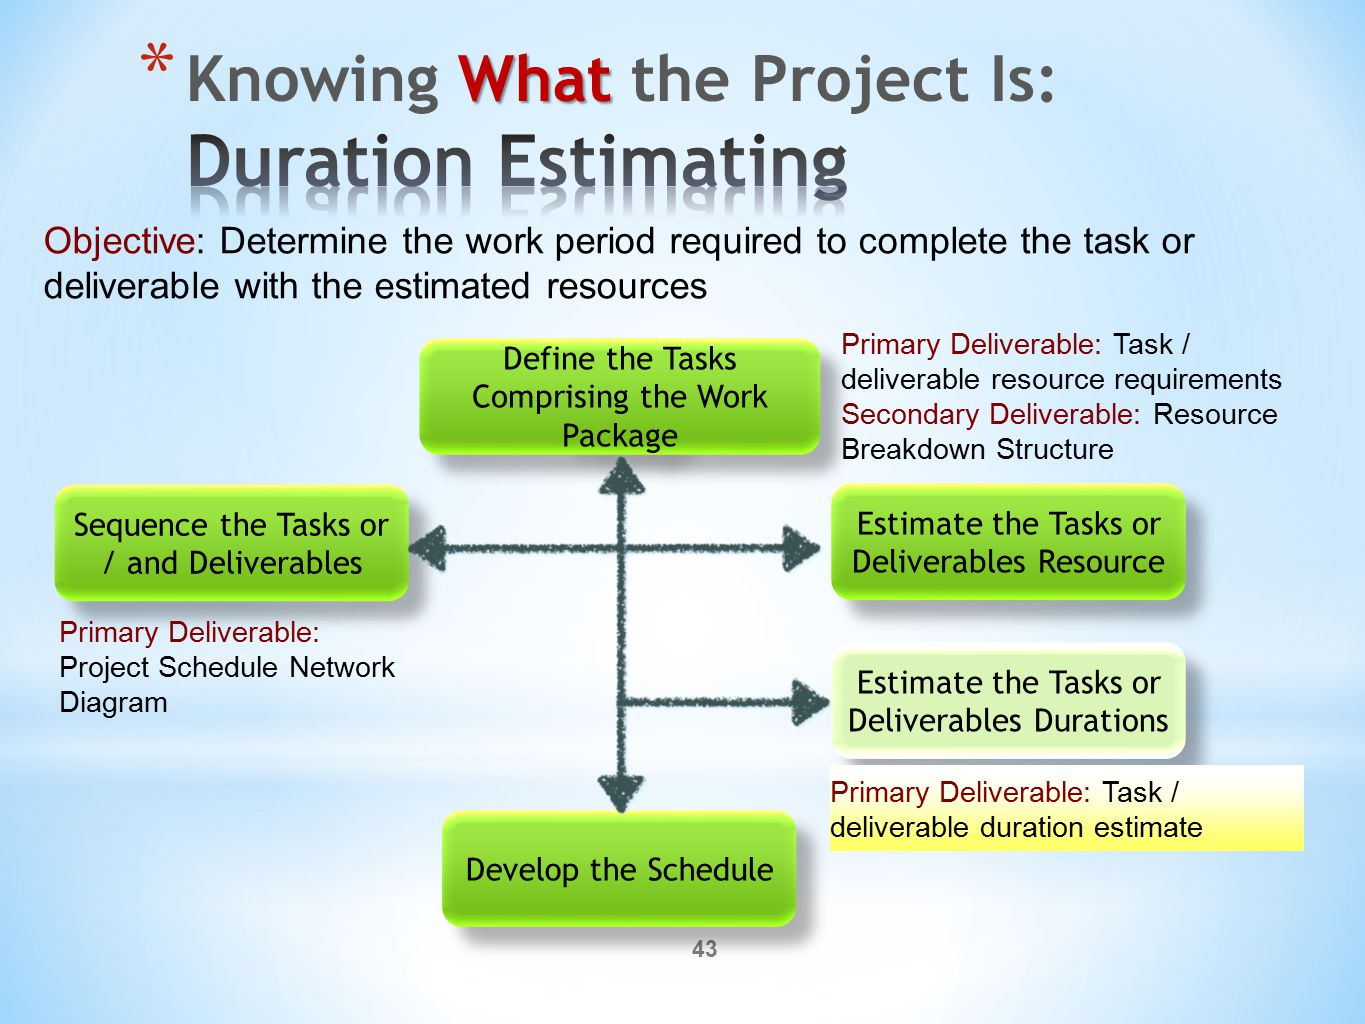 43 Define the Tasks Comprising the Work Package Sequence the Tasks or / and Deliverables Estimate the Tasks or Deliverables Resource Estimate the Task